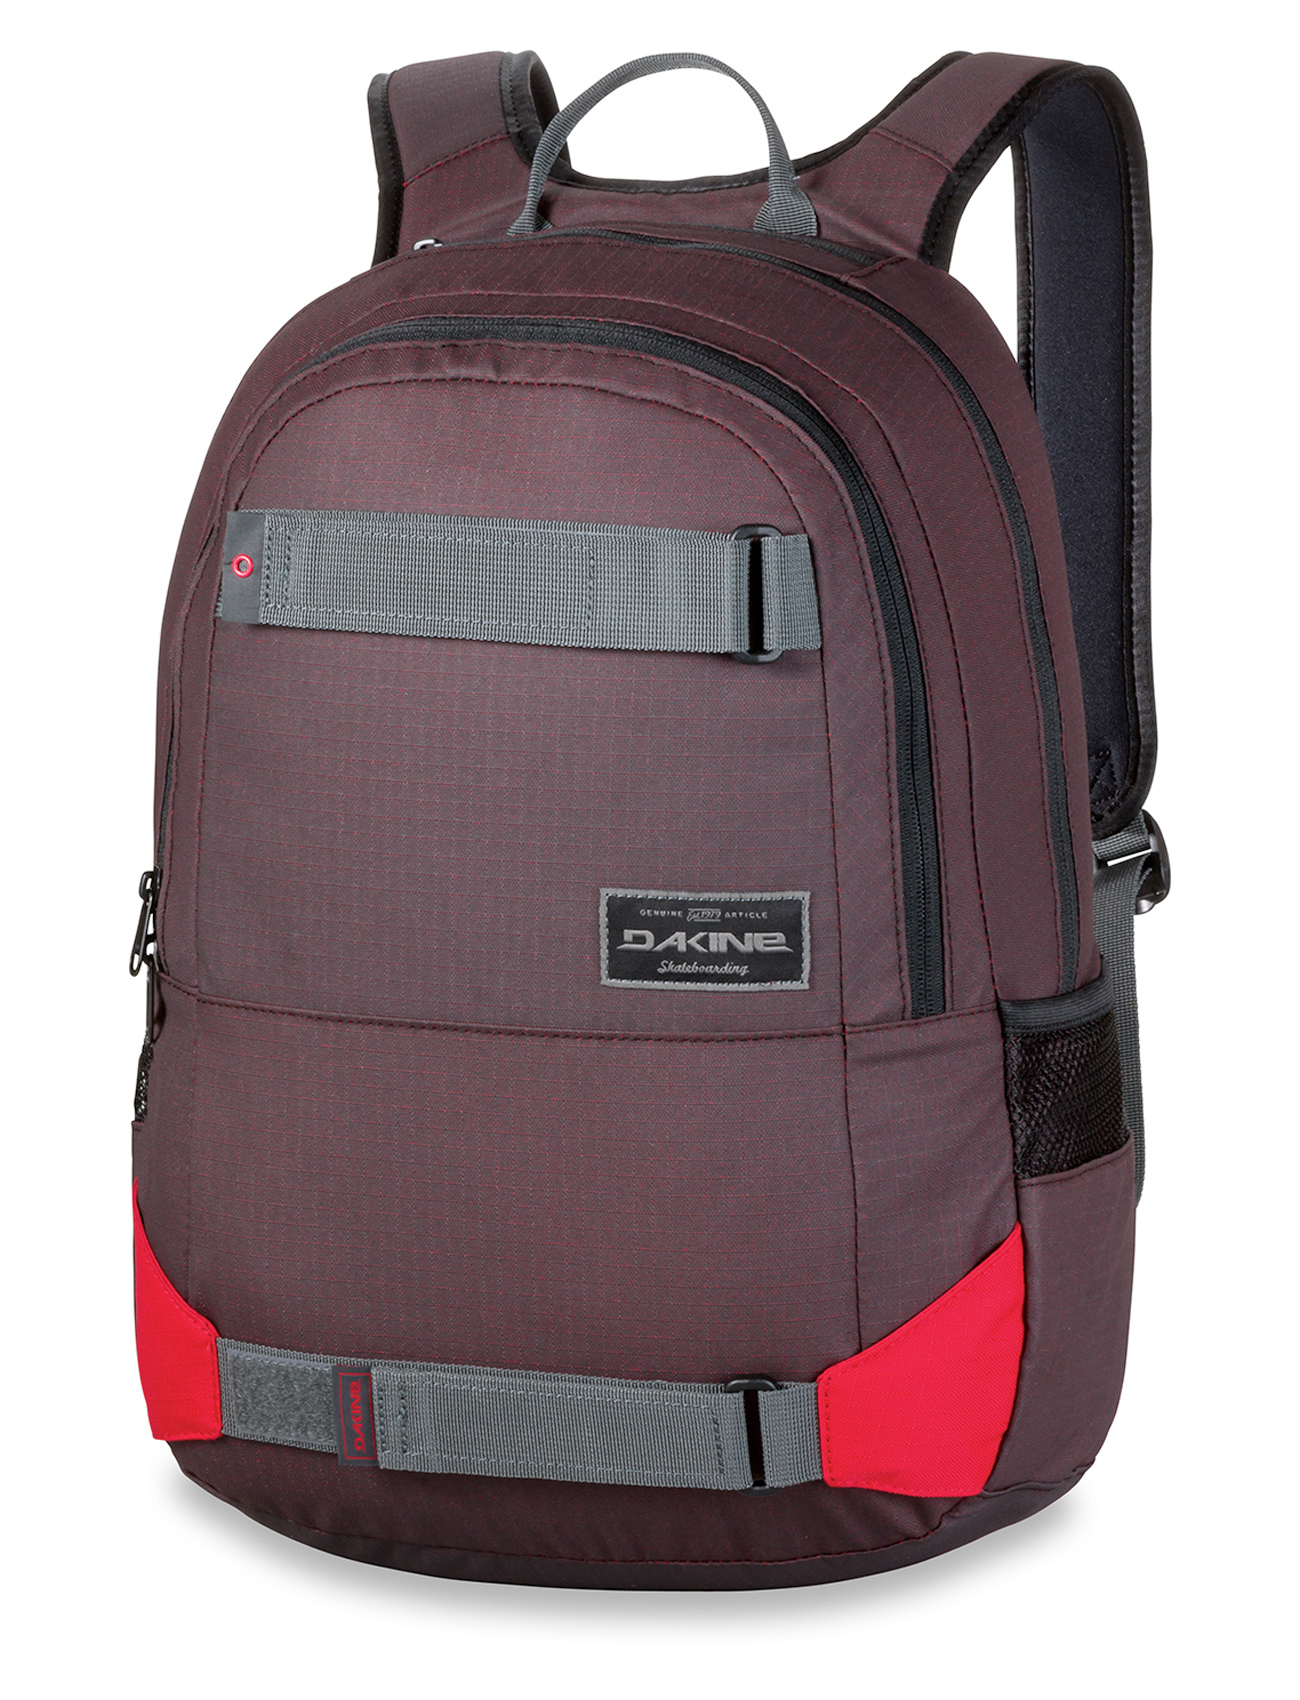 Dakine Backpack Option 27l Rucksack Bag Skate Pack